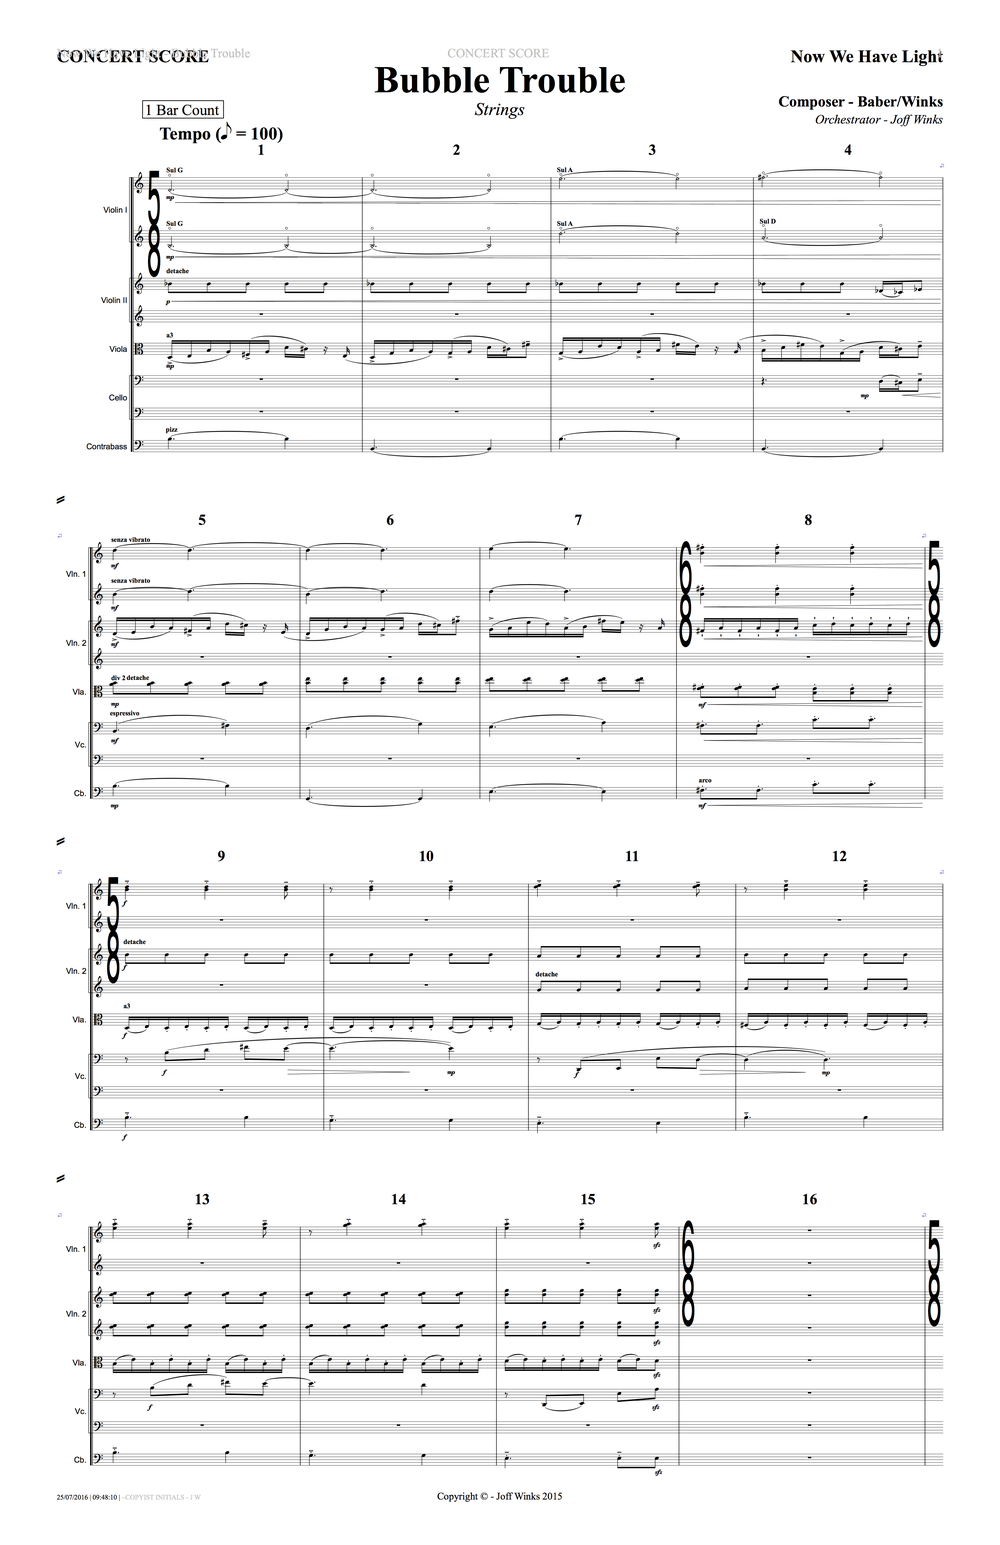 Sanguine Hum - 'Bubble Trouble' - string arrangement page 1